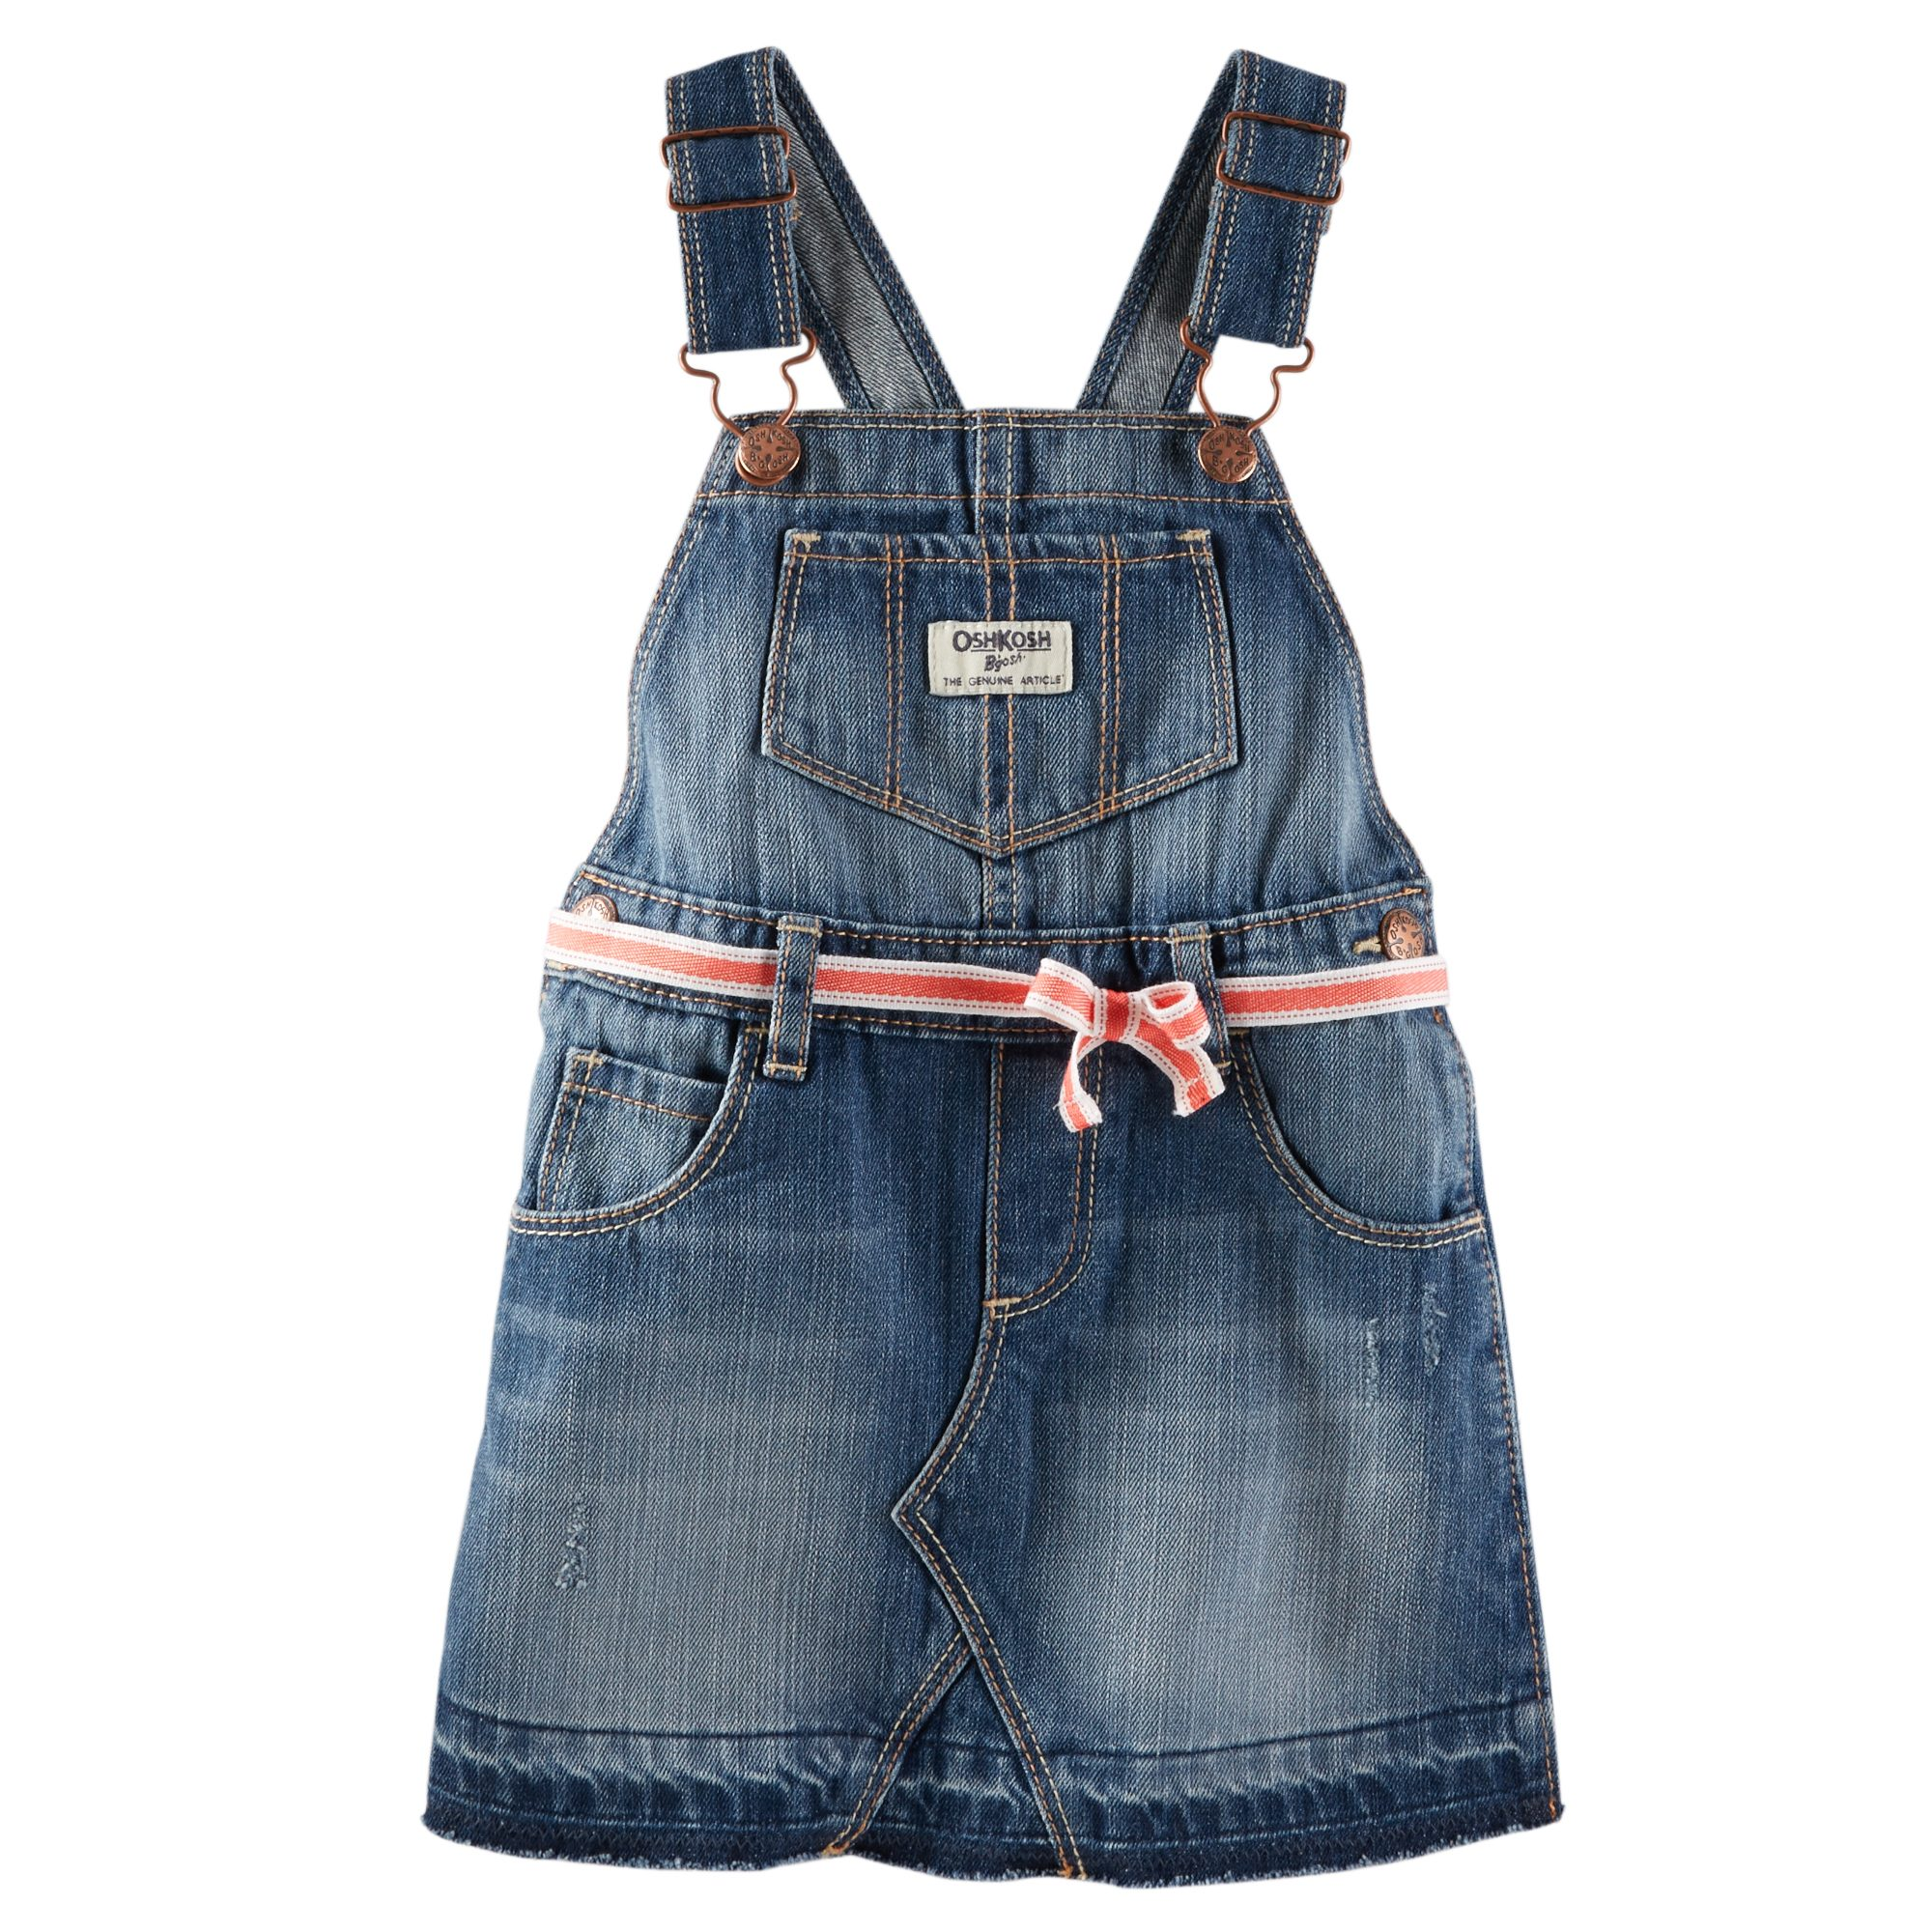 Oshkosh Dark Denim Pinafore